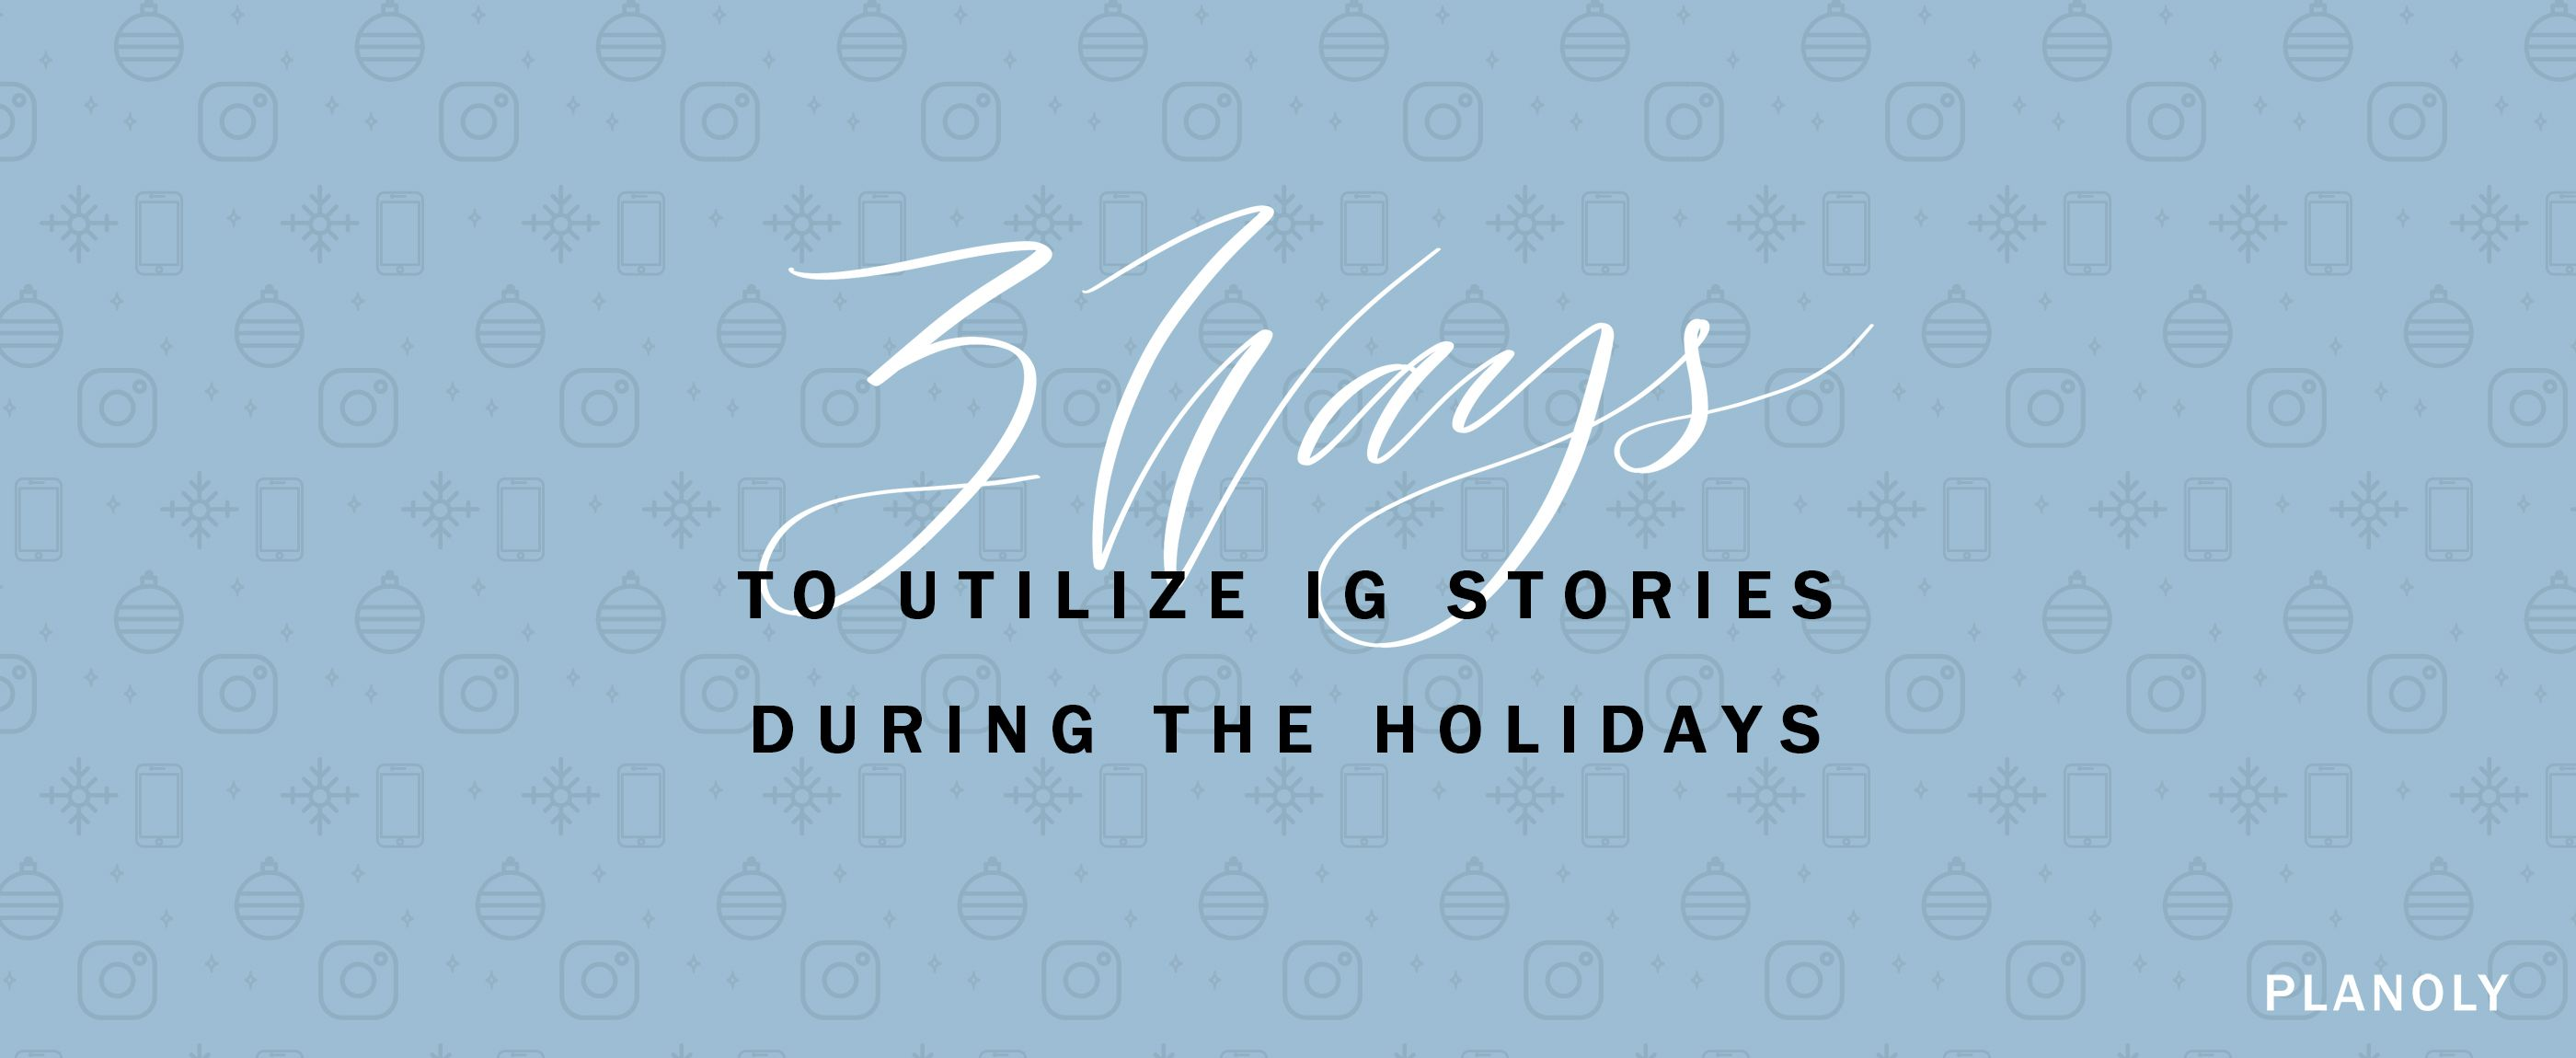 3 Ways to Utilize IG Stories During the Holidays